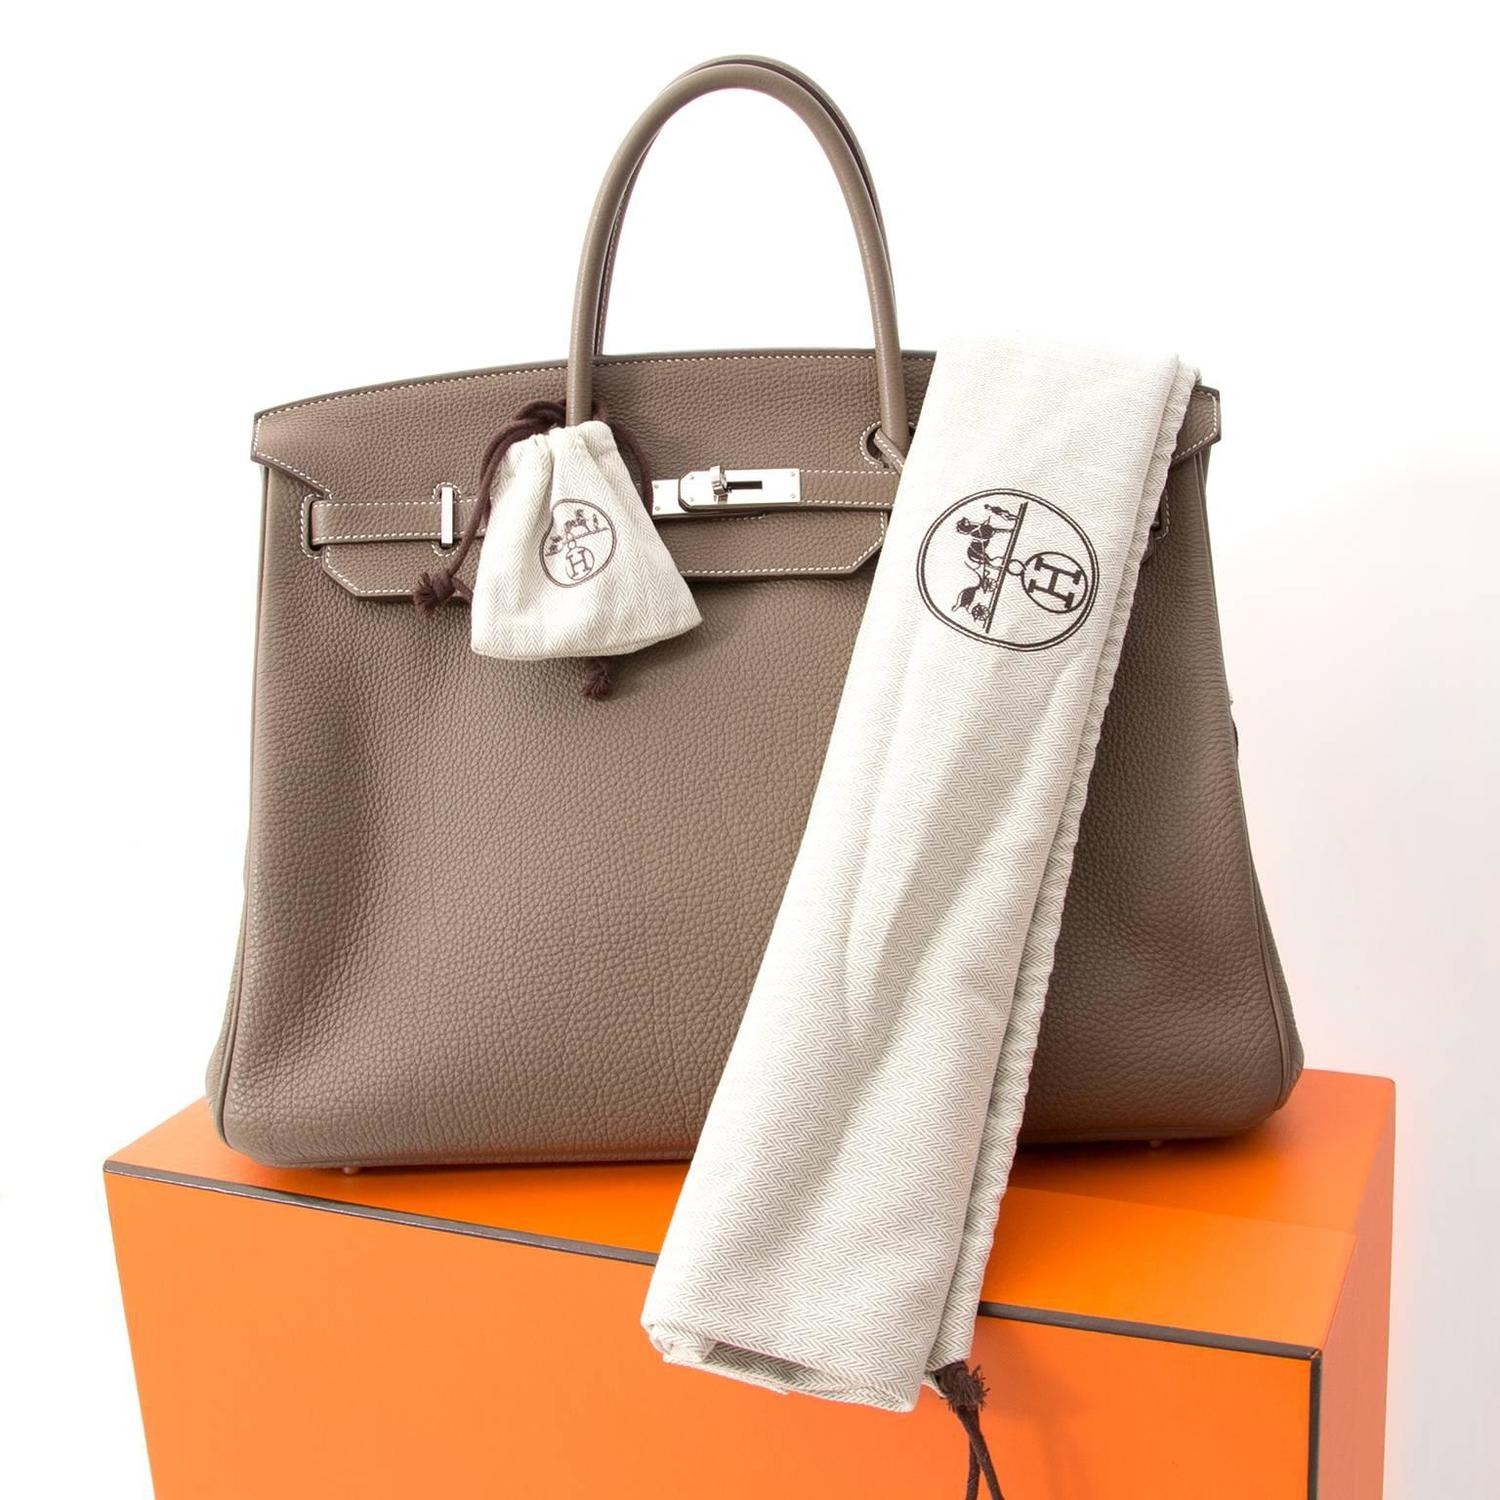 Herm¨¨s Birkin 40 Togo Etoupe Grey PHW For Sale at 1stdibs